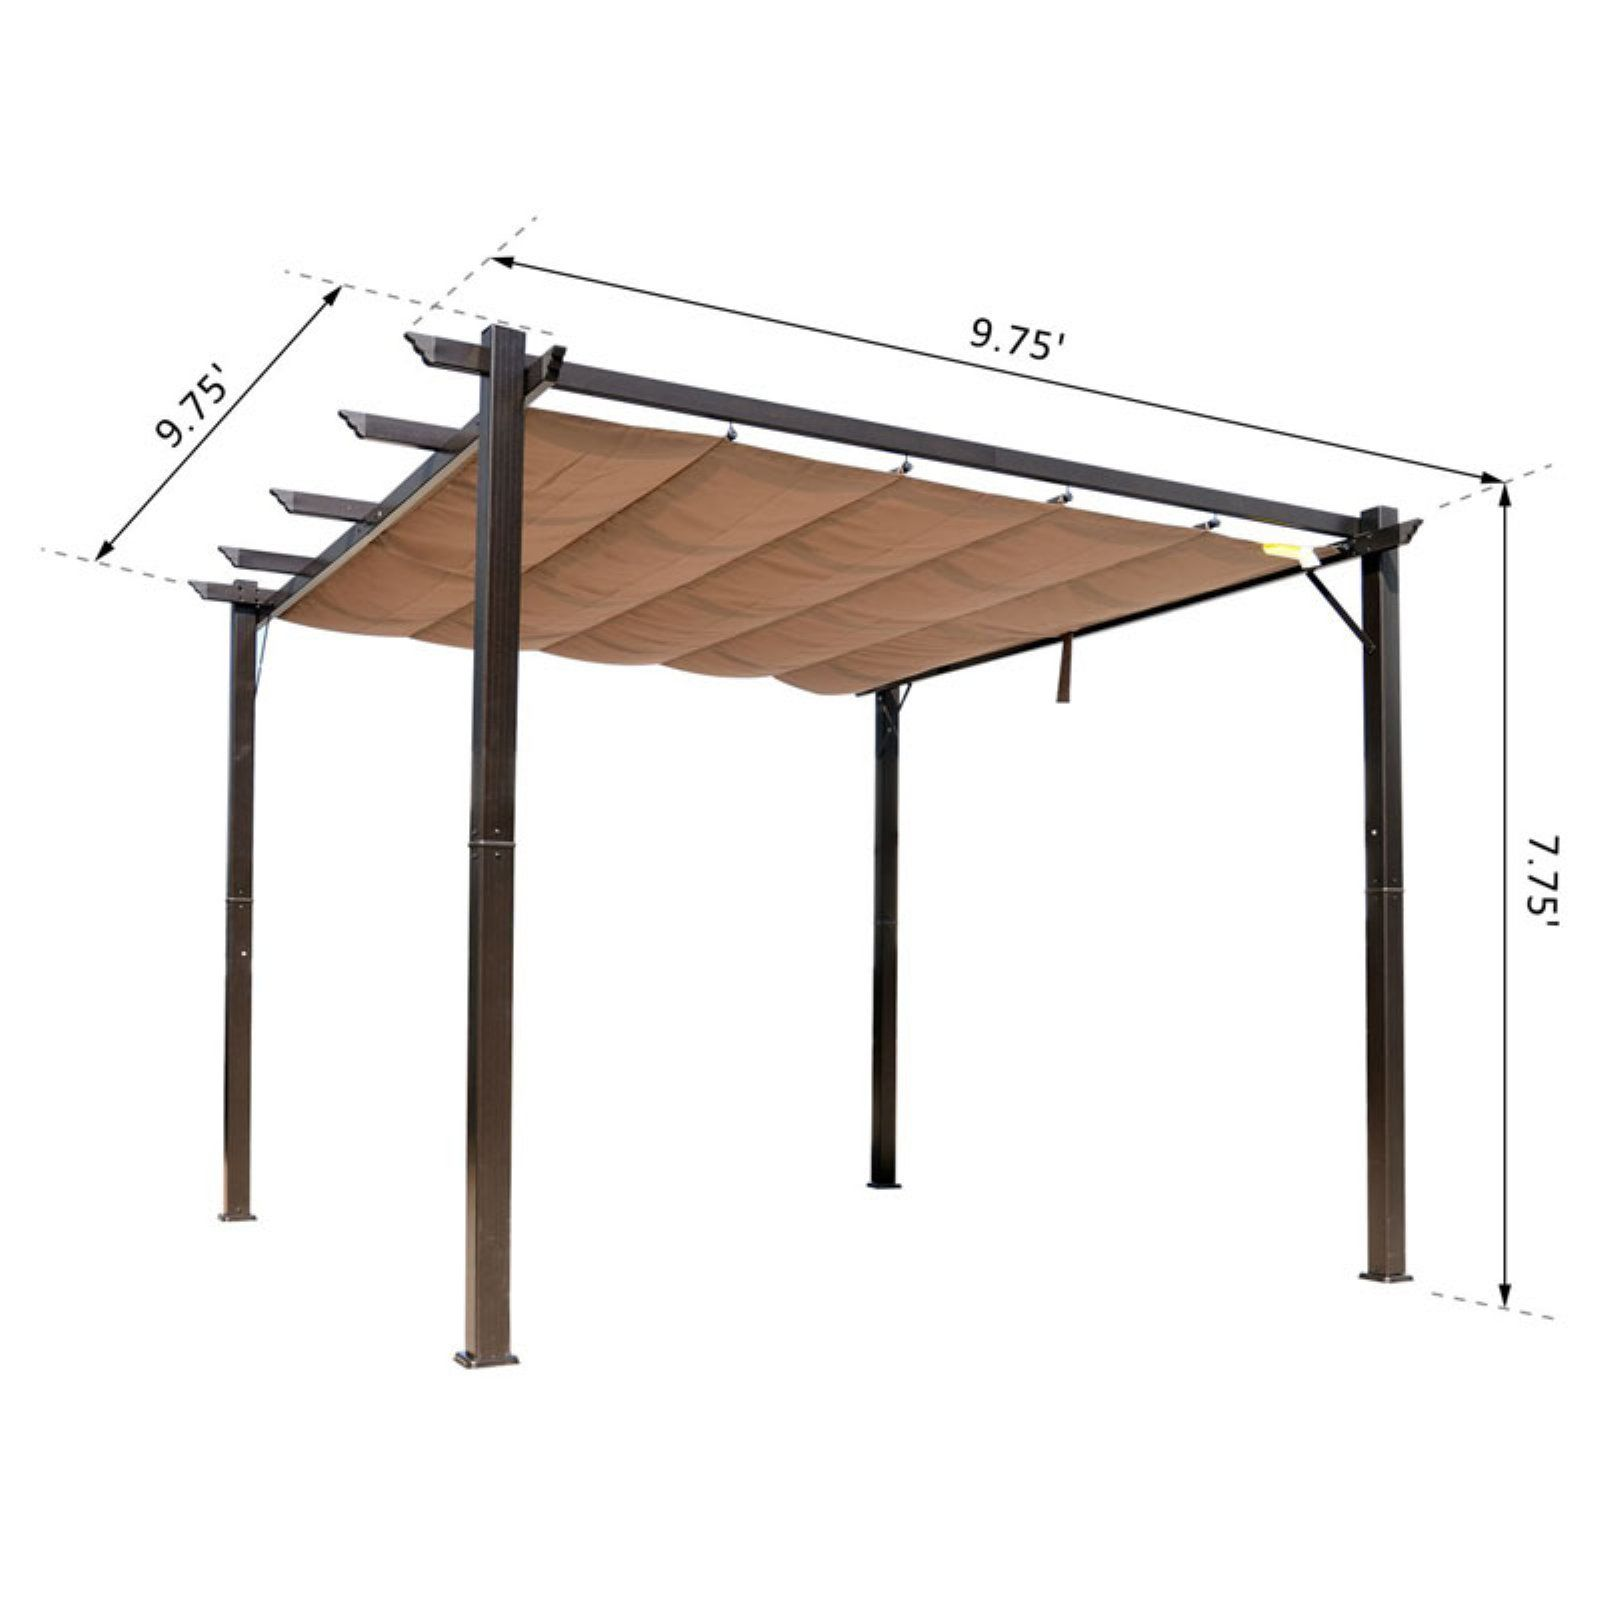 Outsunny 10 X 10 Steel Outdoor Pergola Gazebo Backyard Canopy Cover Walmart Com Outdoor Pergola Canopy Cover Backyard Canopy